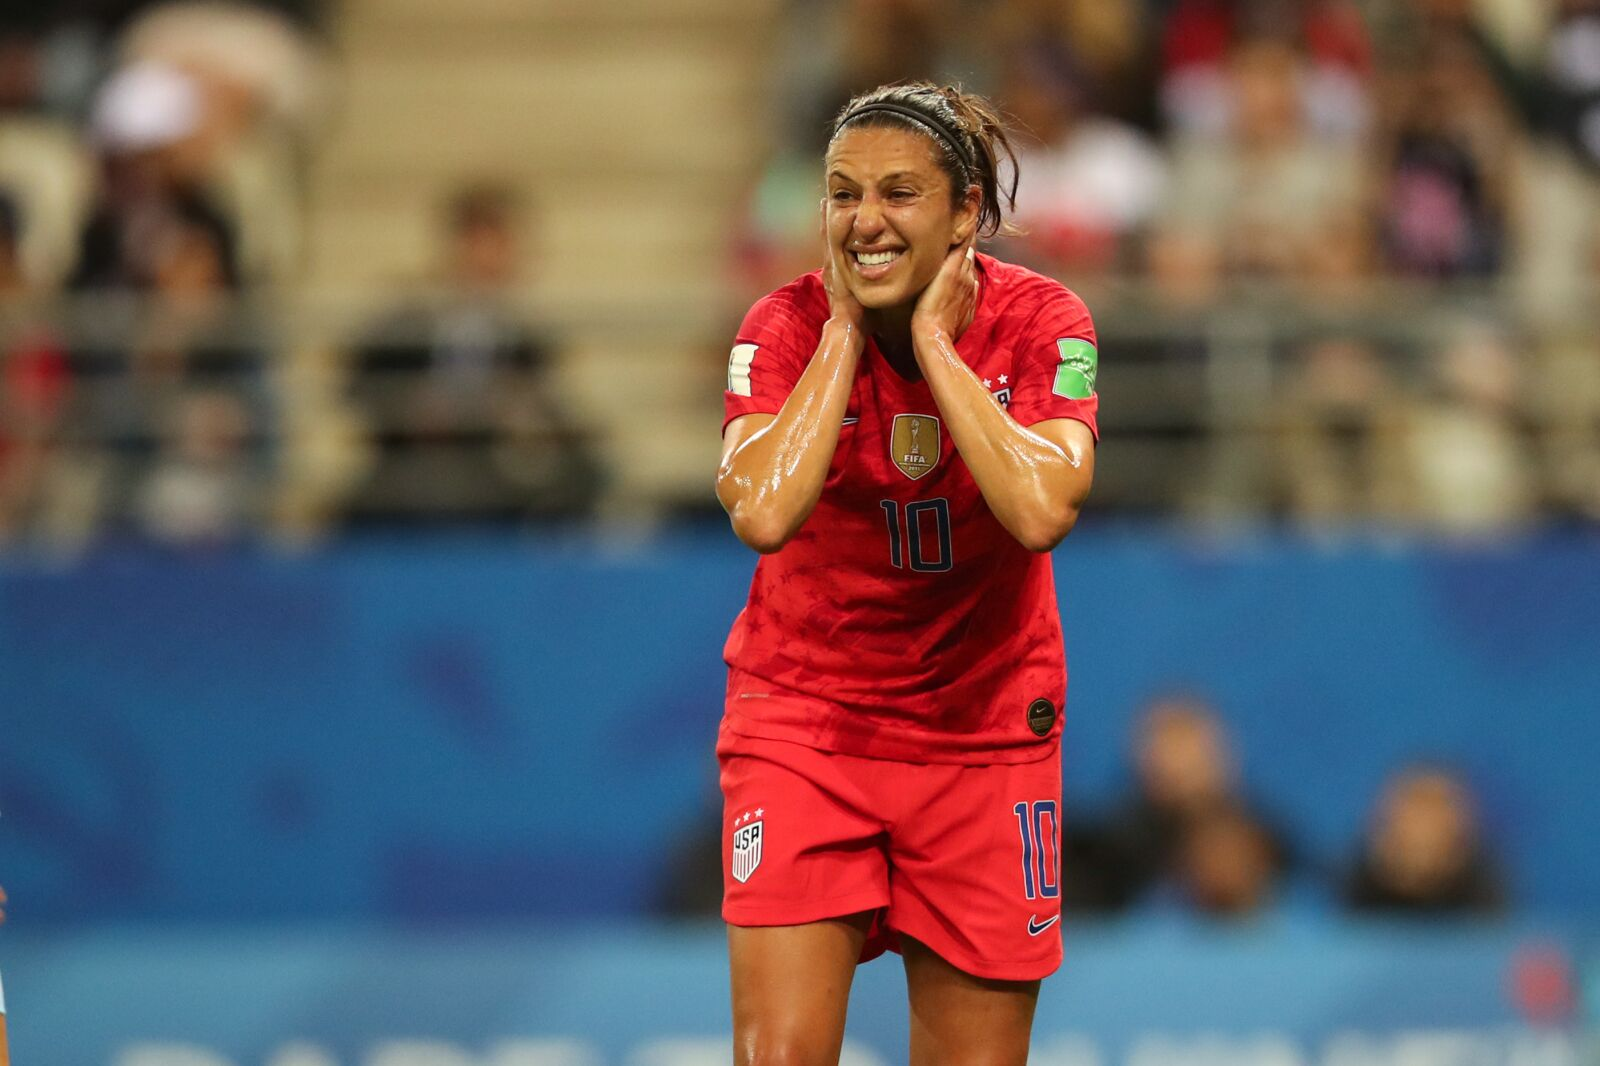 Superstitious Uswnt Star Carli Lloyd Hoping To Repeat World Cup Success